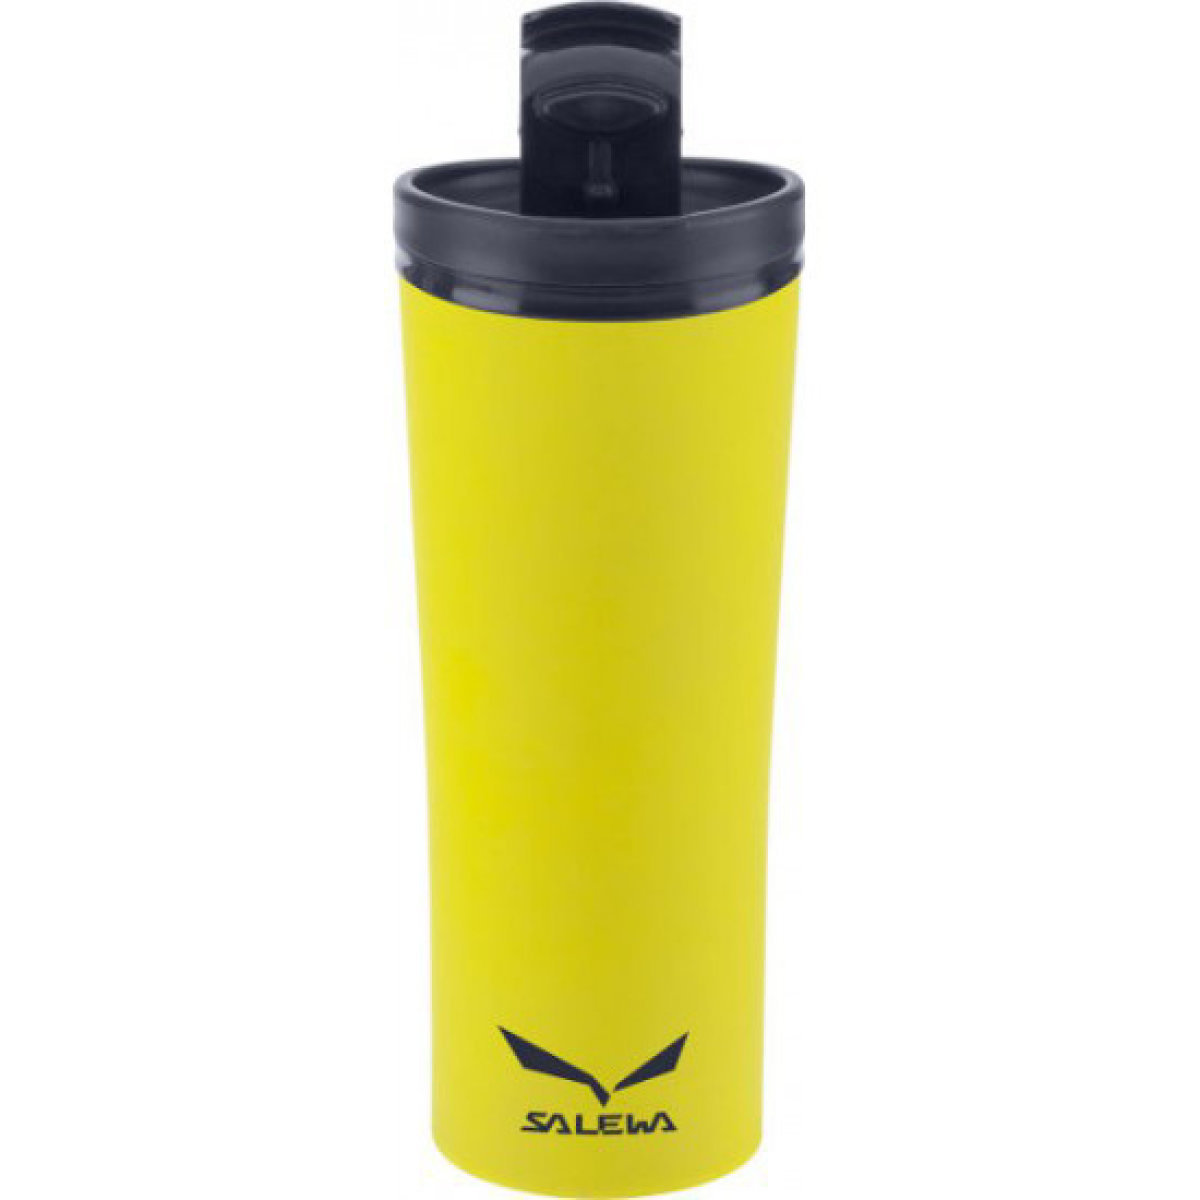 Термокружка Salewa Thermo Mug Yellow 2325/2400 013.003.0663